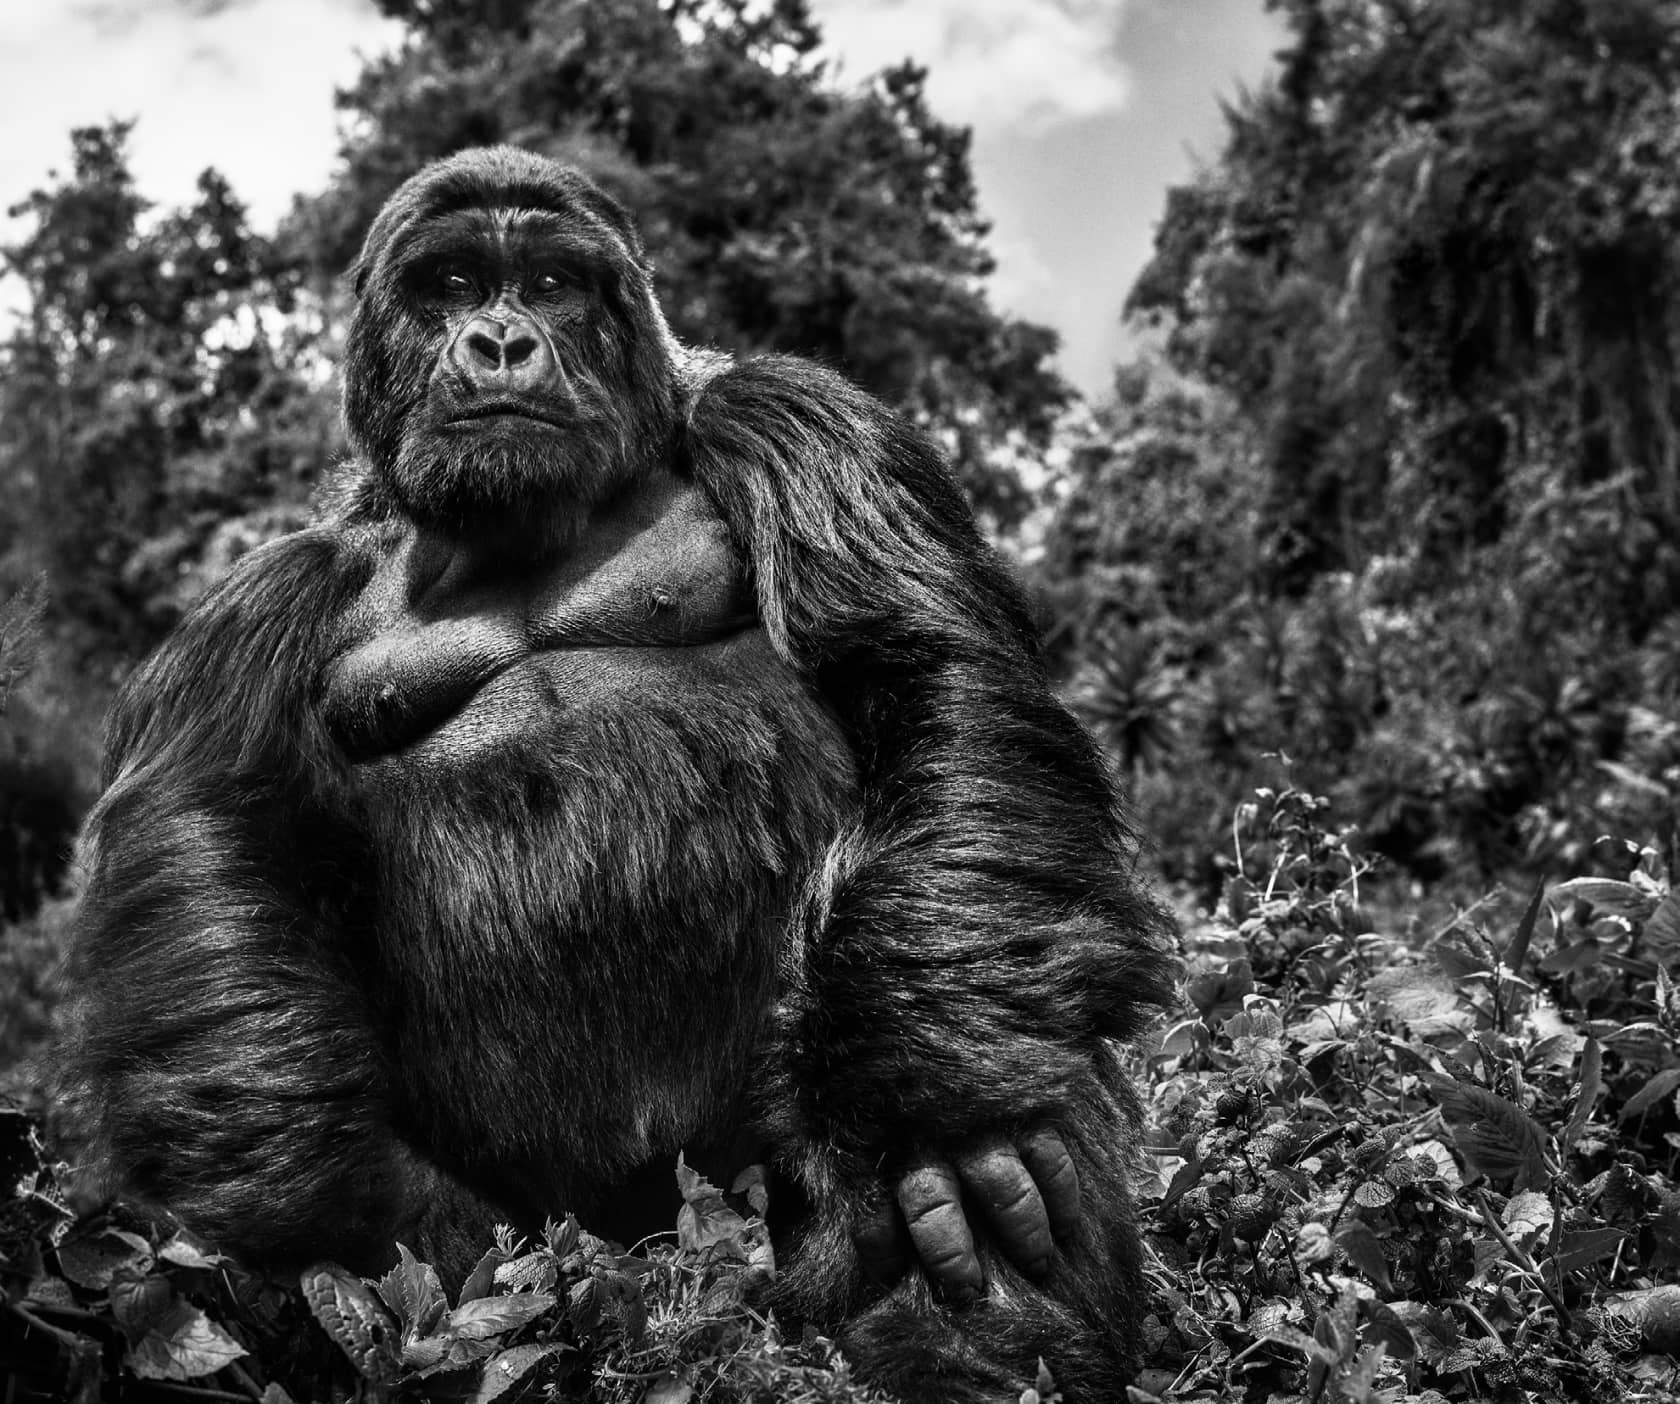 David Yarrow, Judge and Jury, 2019